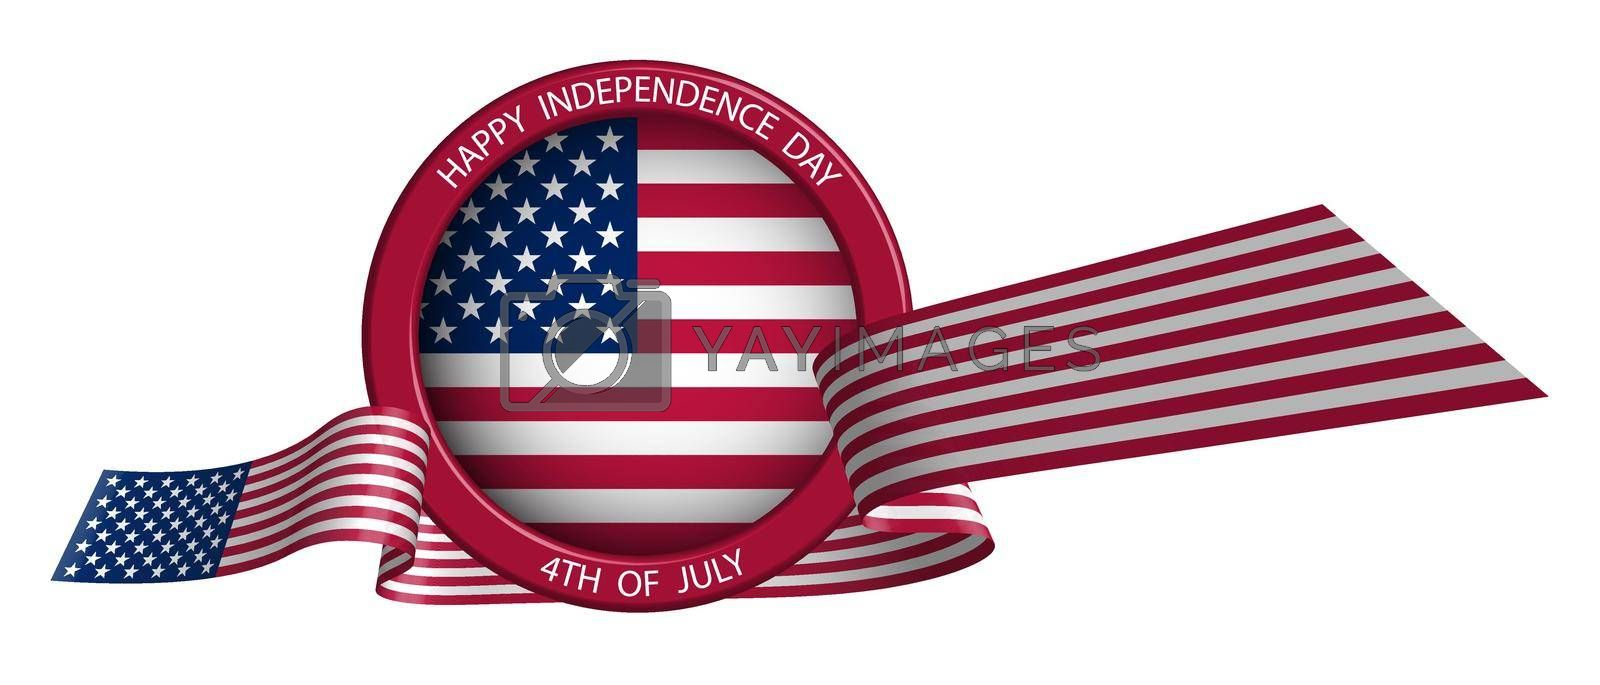 emblem, label, label with ribbon in american flag colors. Festive design element for Independence Day USA. Isolated vector on white background